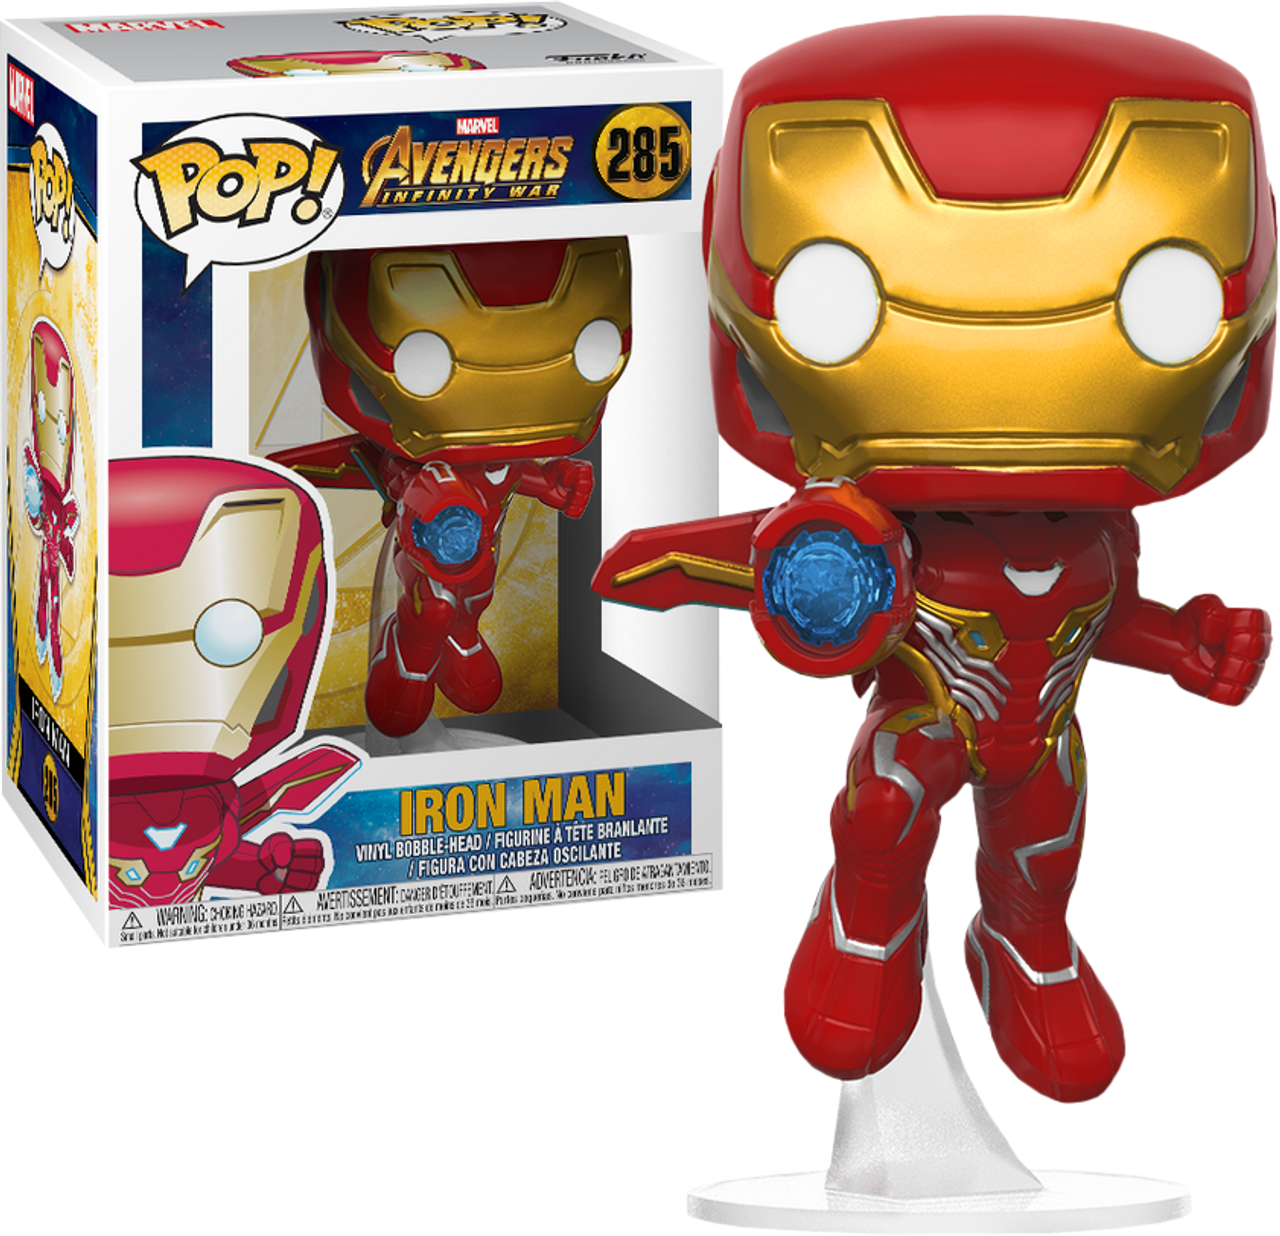 Avengers 3 Infinity War Iron Man Flying Pop Vinyl Figure